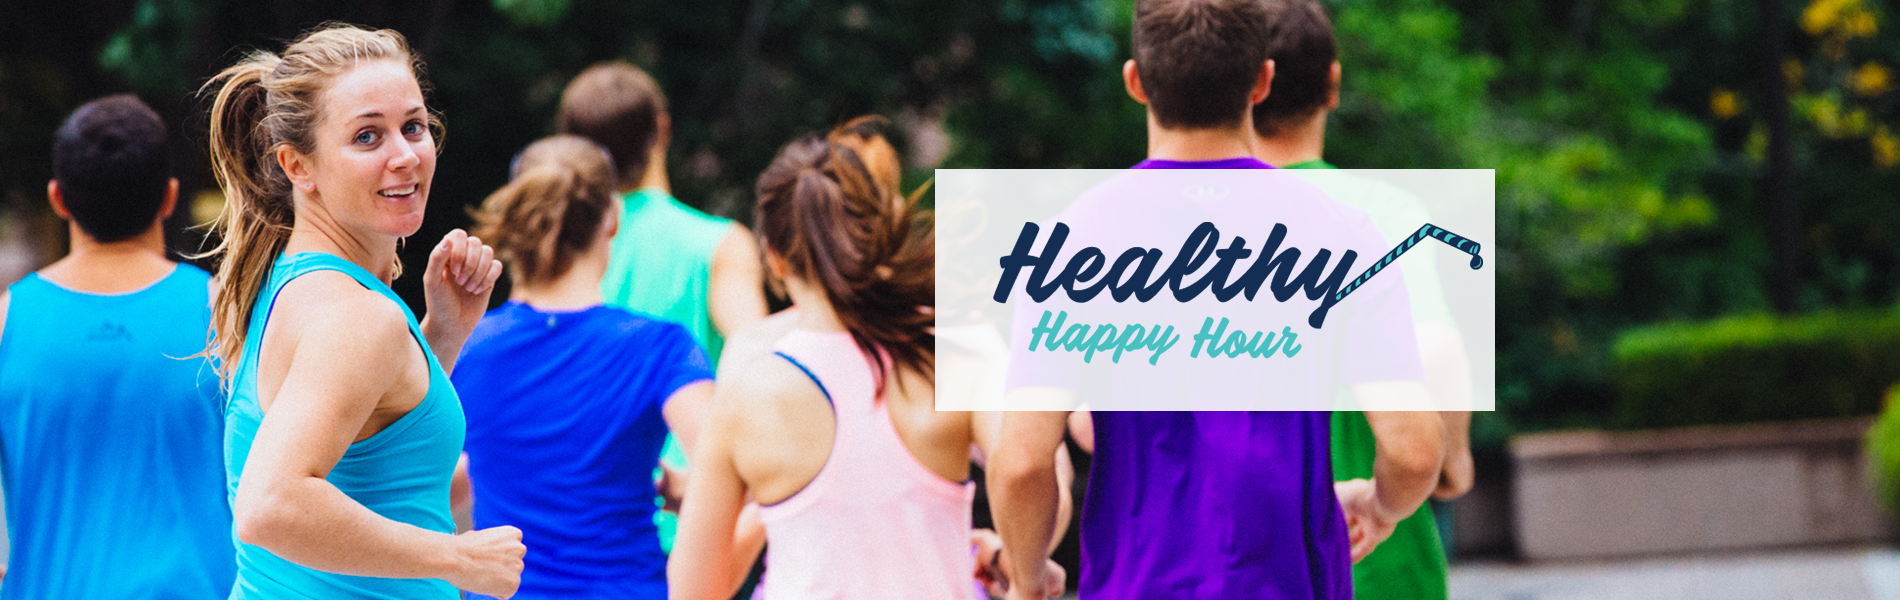 Healthy Happy Hour in Cherry Hill, NJ - Apr 1, 2014 6:00 ...  Healthy Happy Hour